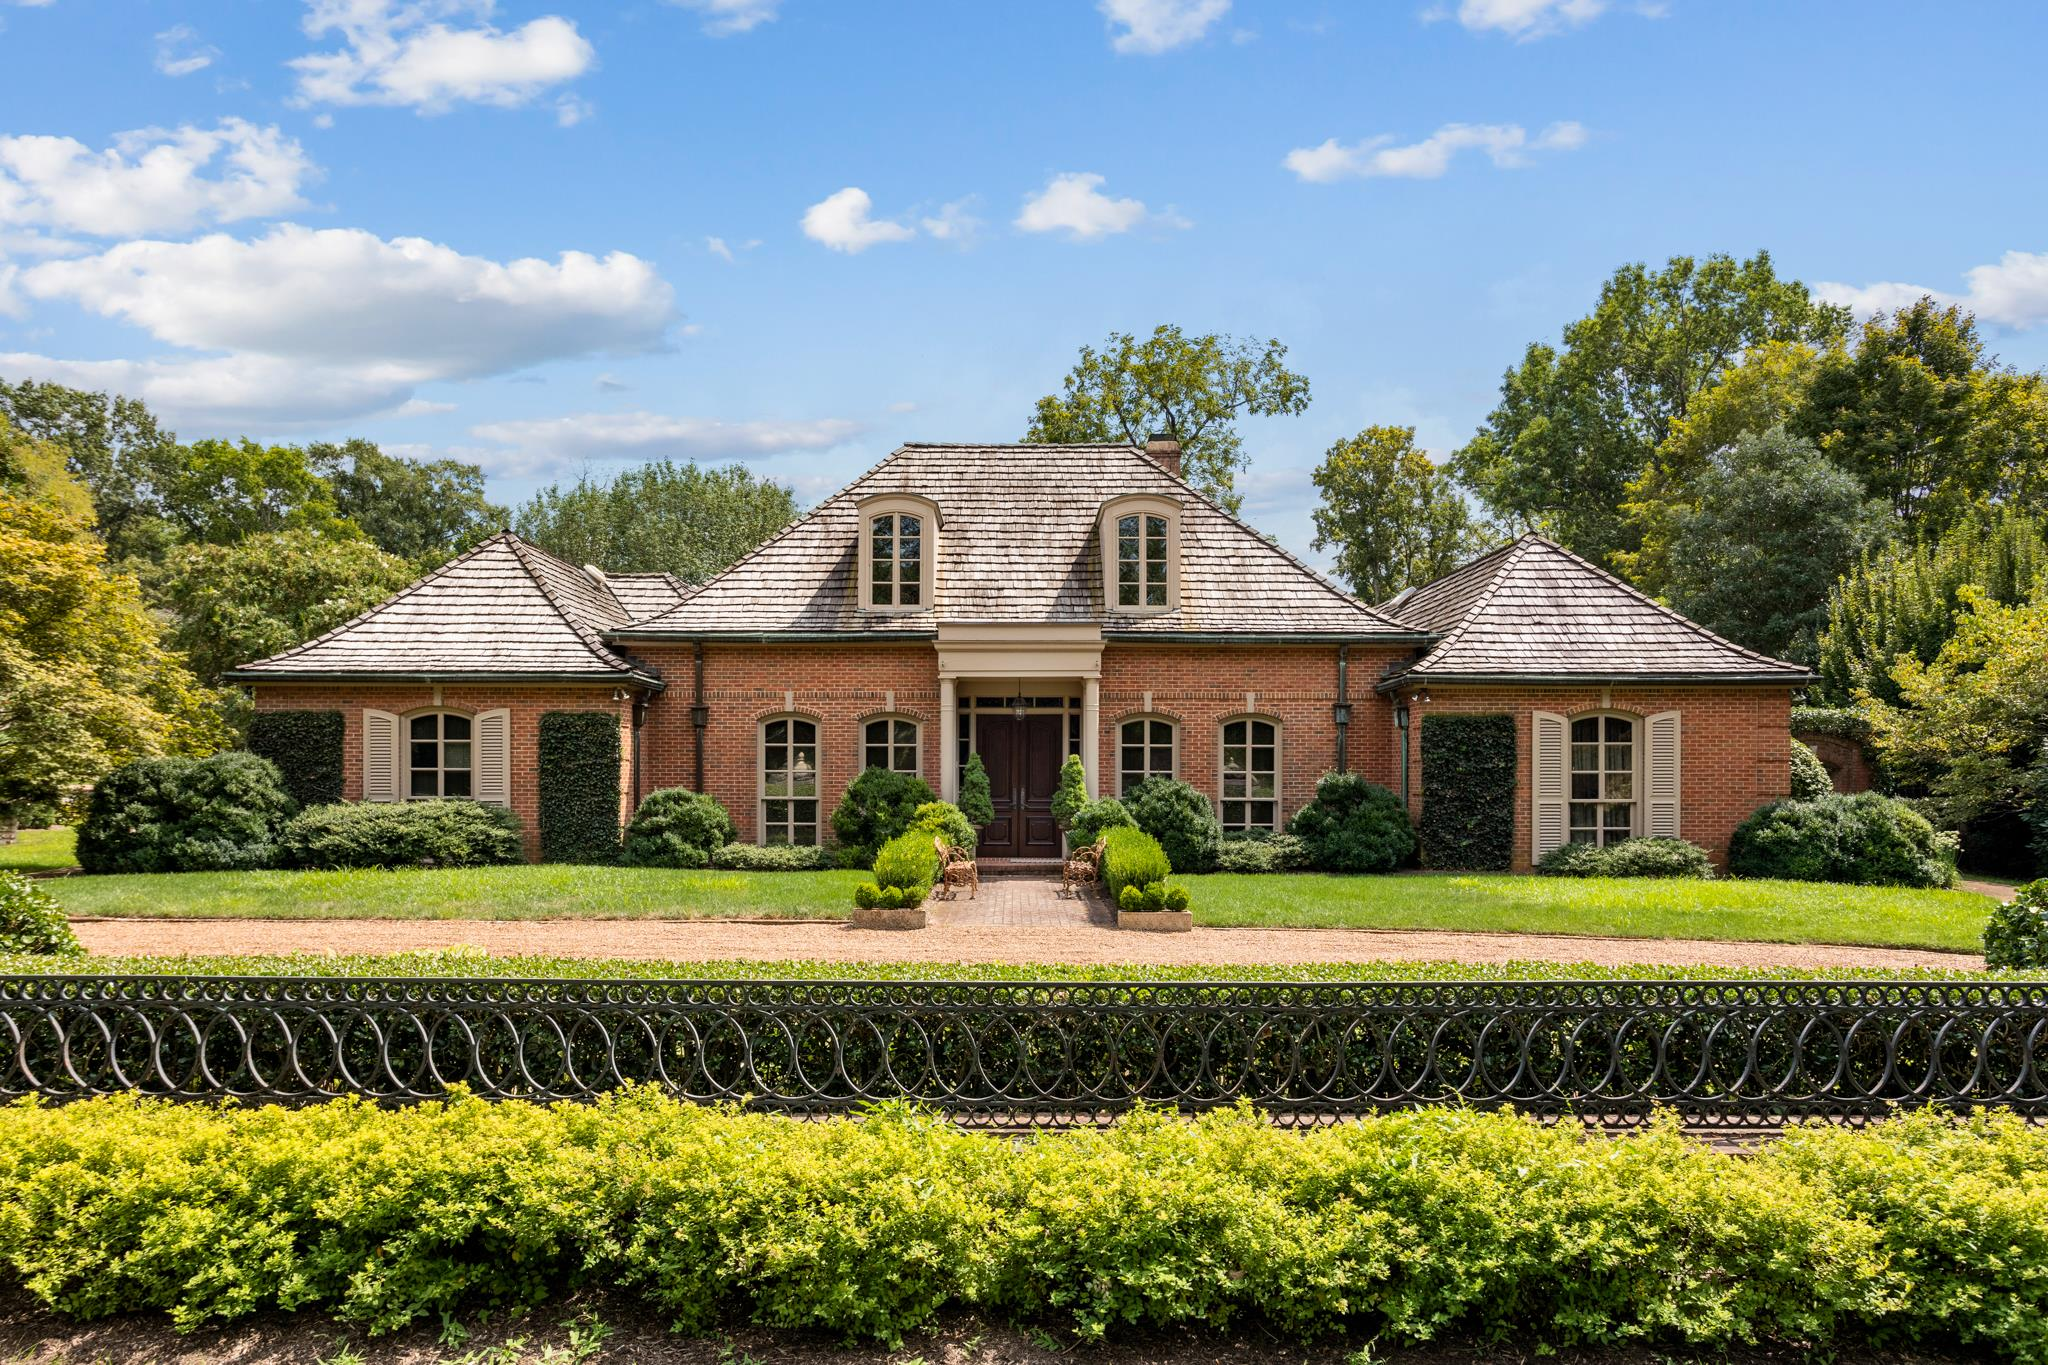 4433 Warner Pl, Nashville, TN 37205 - Nashville, TN real estate listing